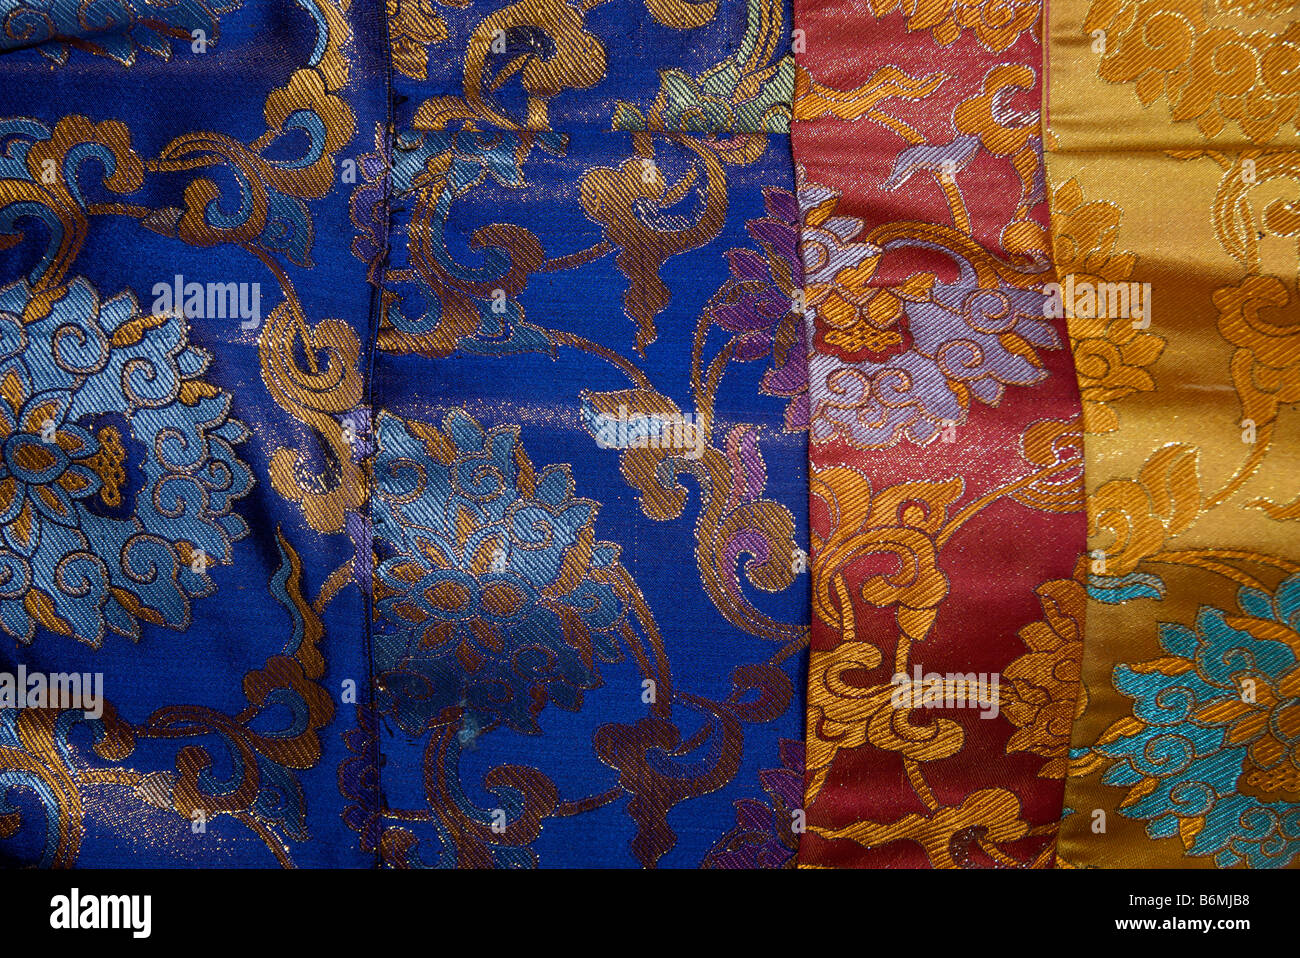 Brocaded fabrics for sale at market. Tibet - Stock Image